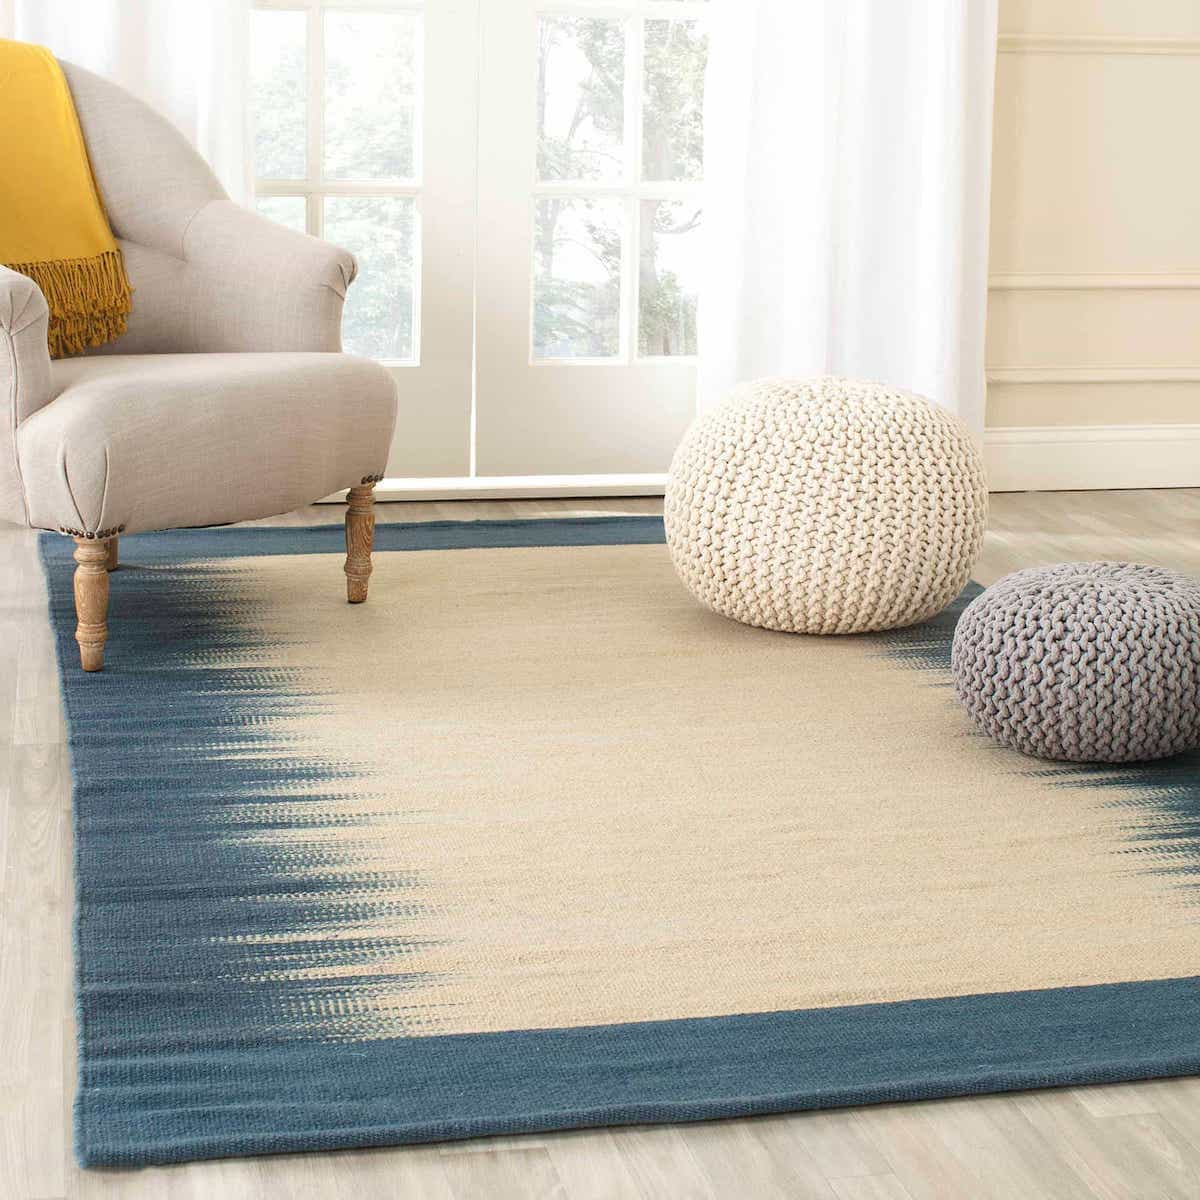 Cozy Sitting Room With Flat Woven Off White Tribal Jute Wool Rug (Image 4 of 15)